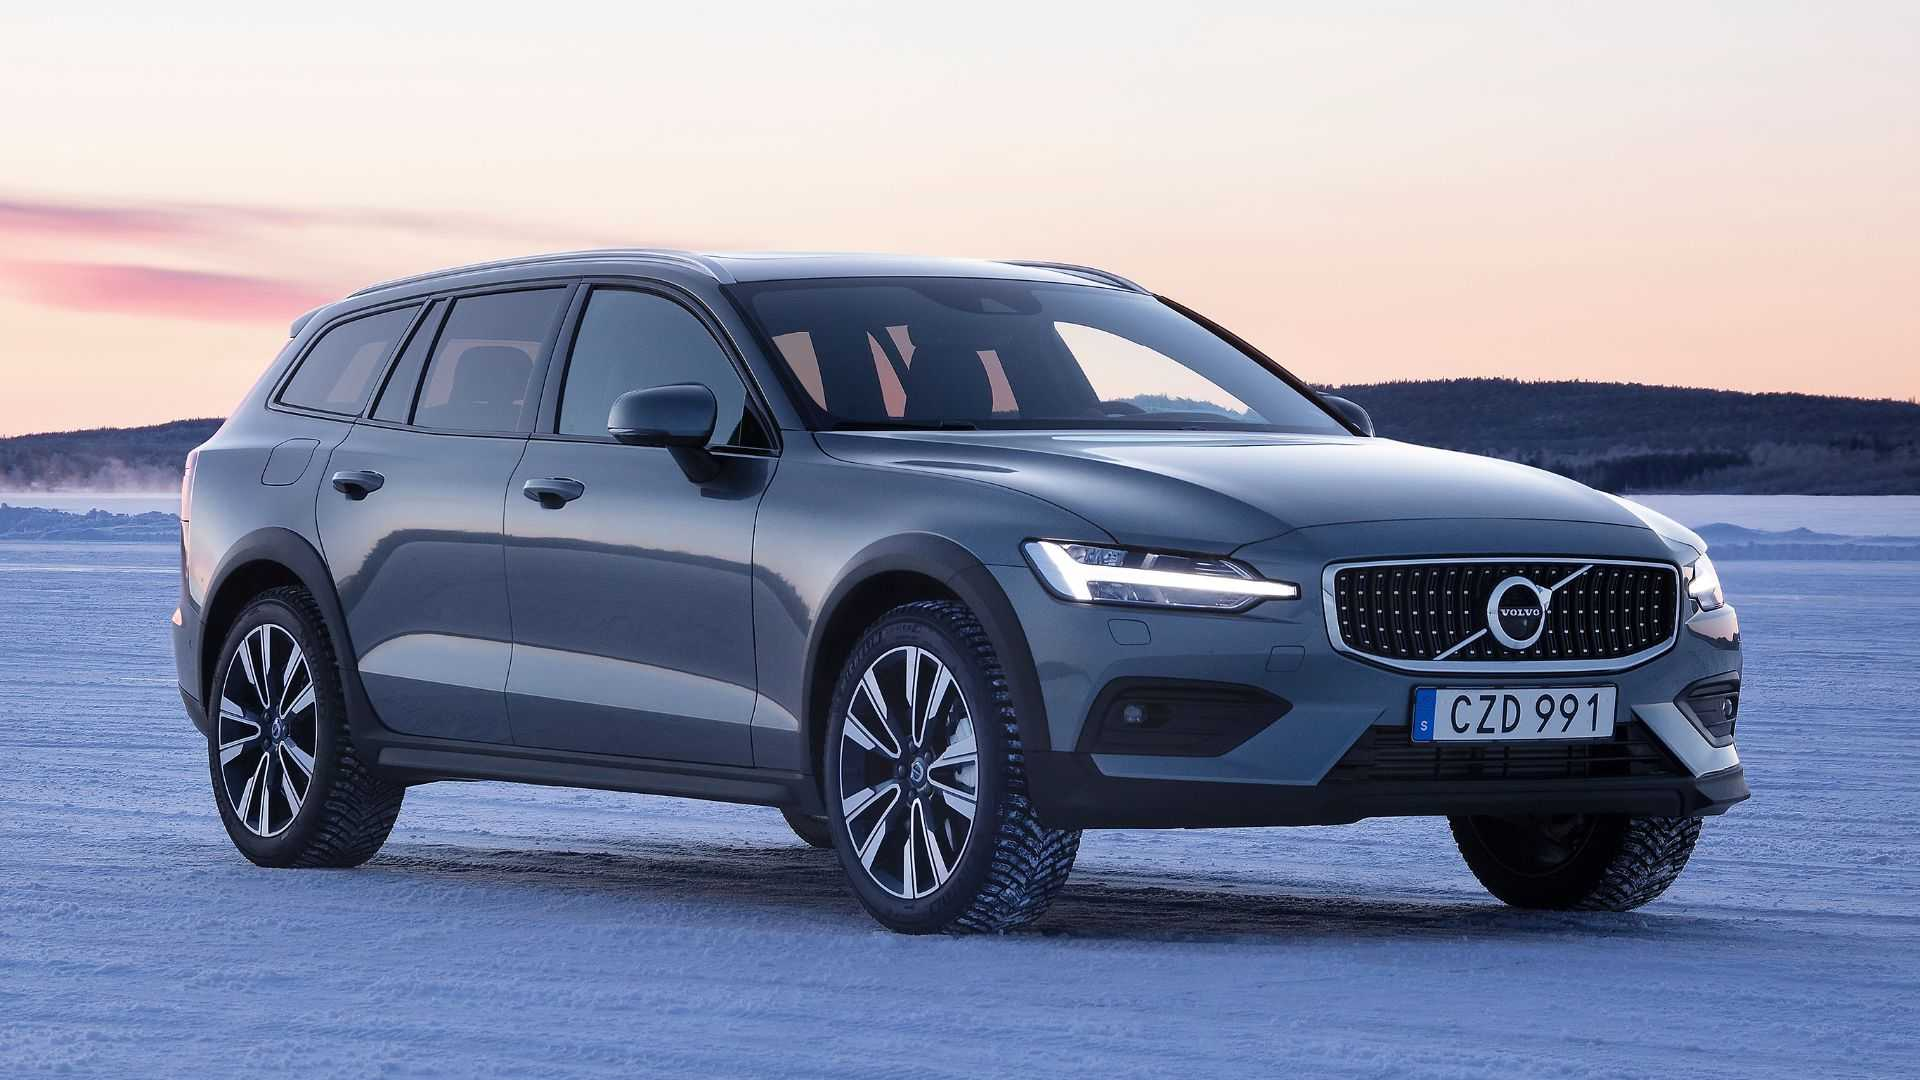 46 All New Volvo Promise 2020 Specs and Review